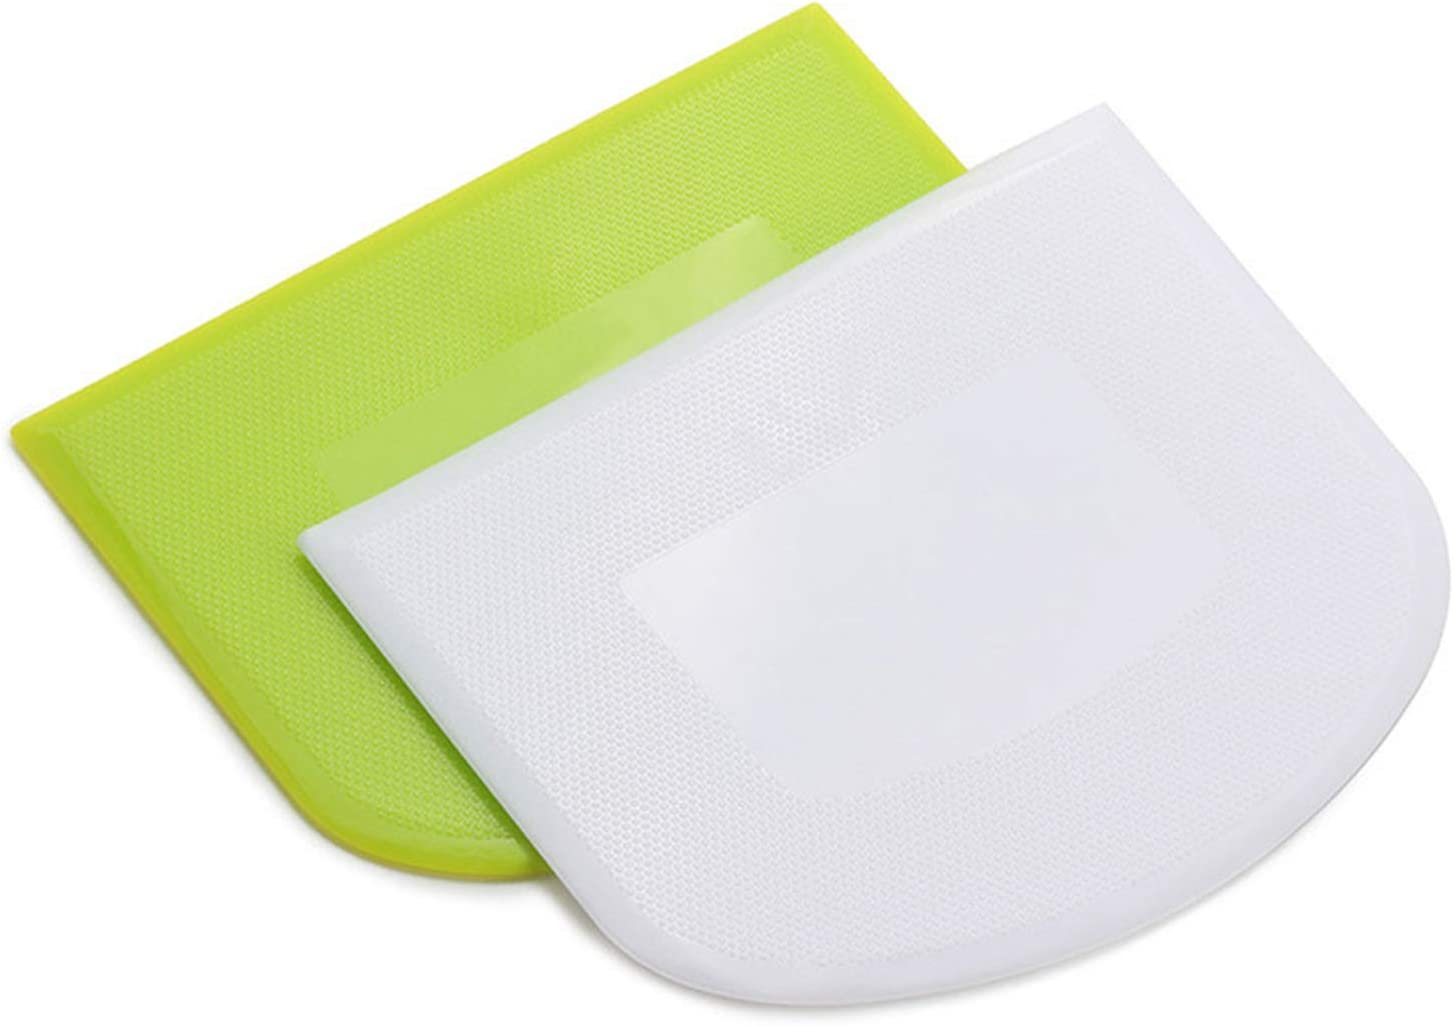 2 PCS Plastic Dough Scraper Bowl Scraper, Food-Grade Bench Scraper, Flexible Dough Cutter, Multipurpose Food Scrappers for Bread, Cake, Cream, Fondant(White+Green)